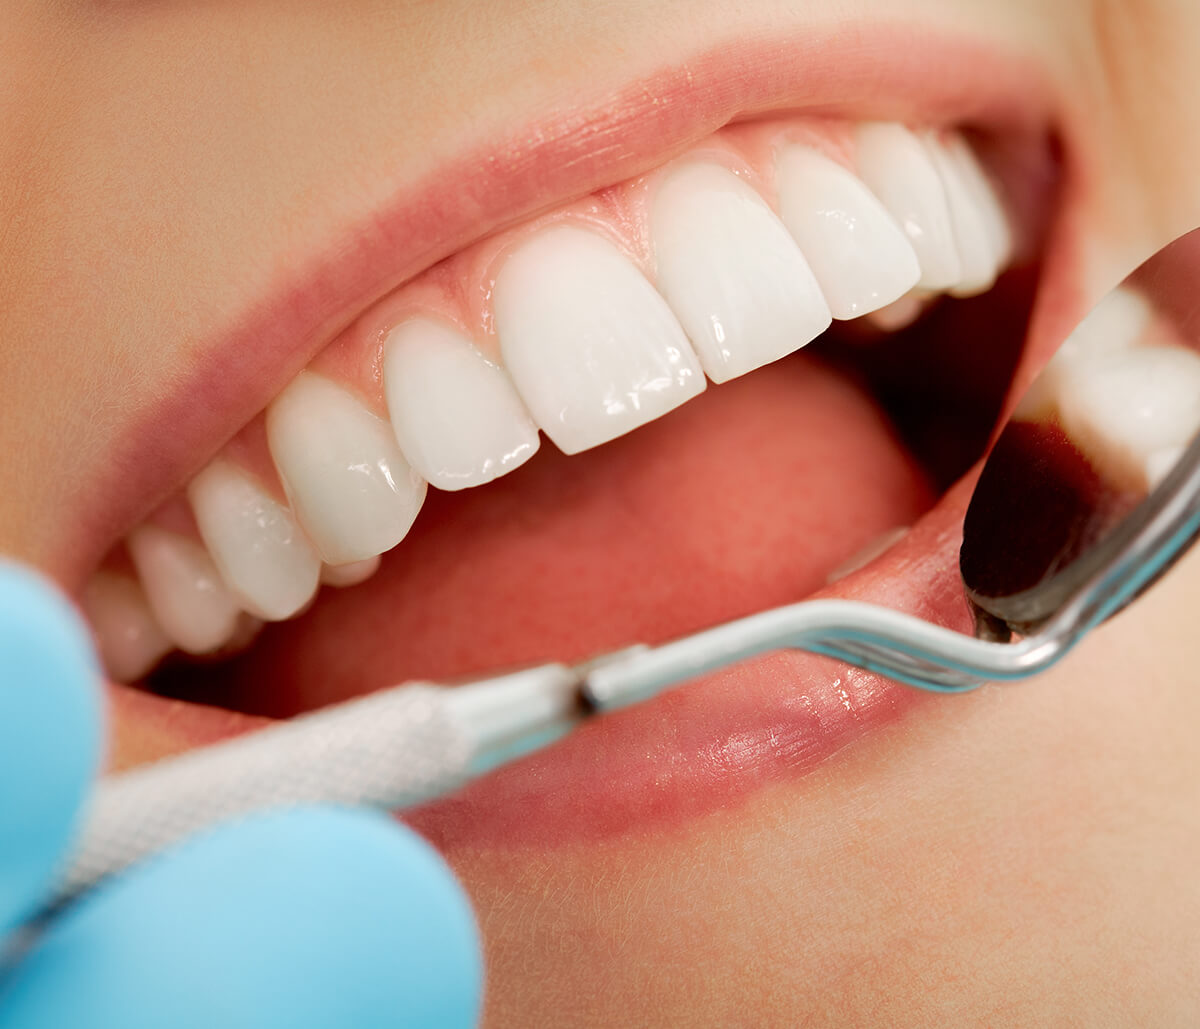 Pembroke Pines dentist helps patients improve their smiles with a professional dental whitening procedure